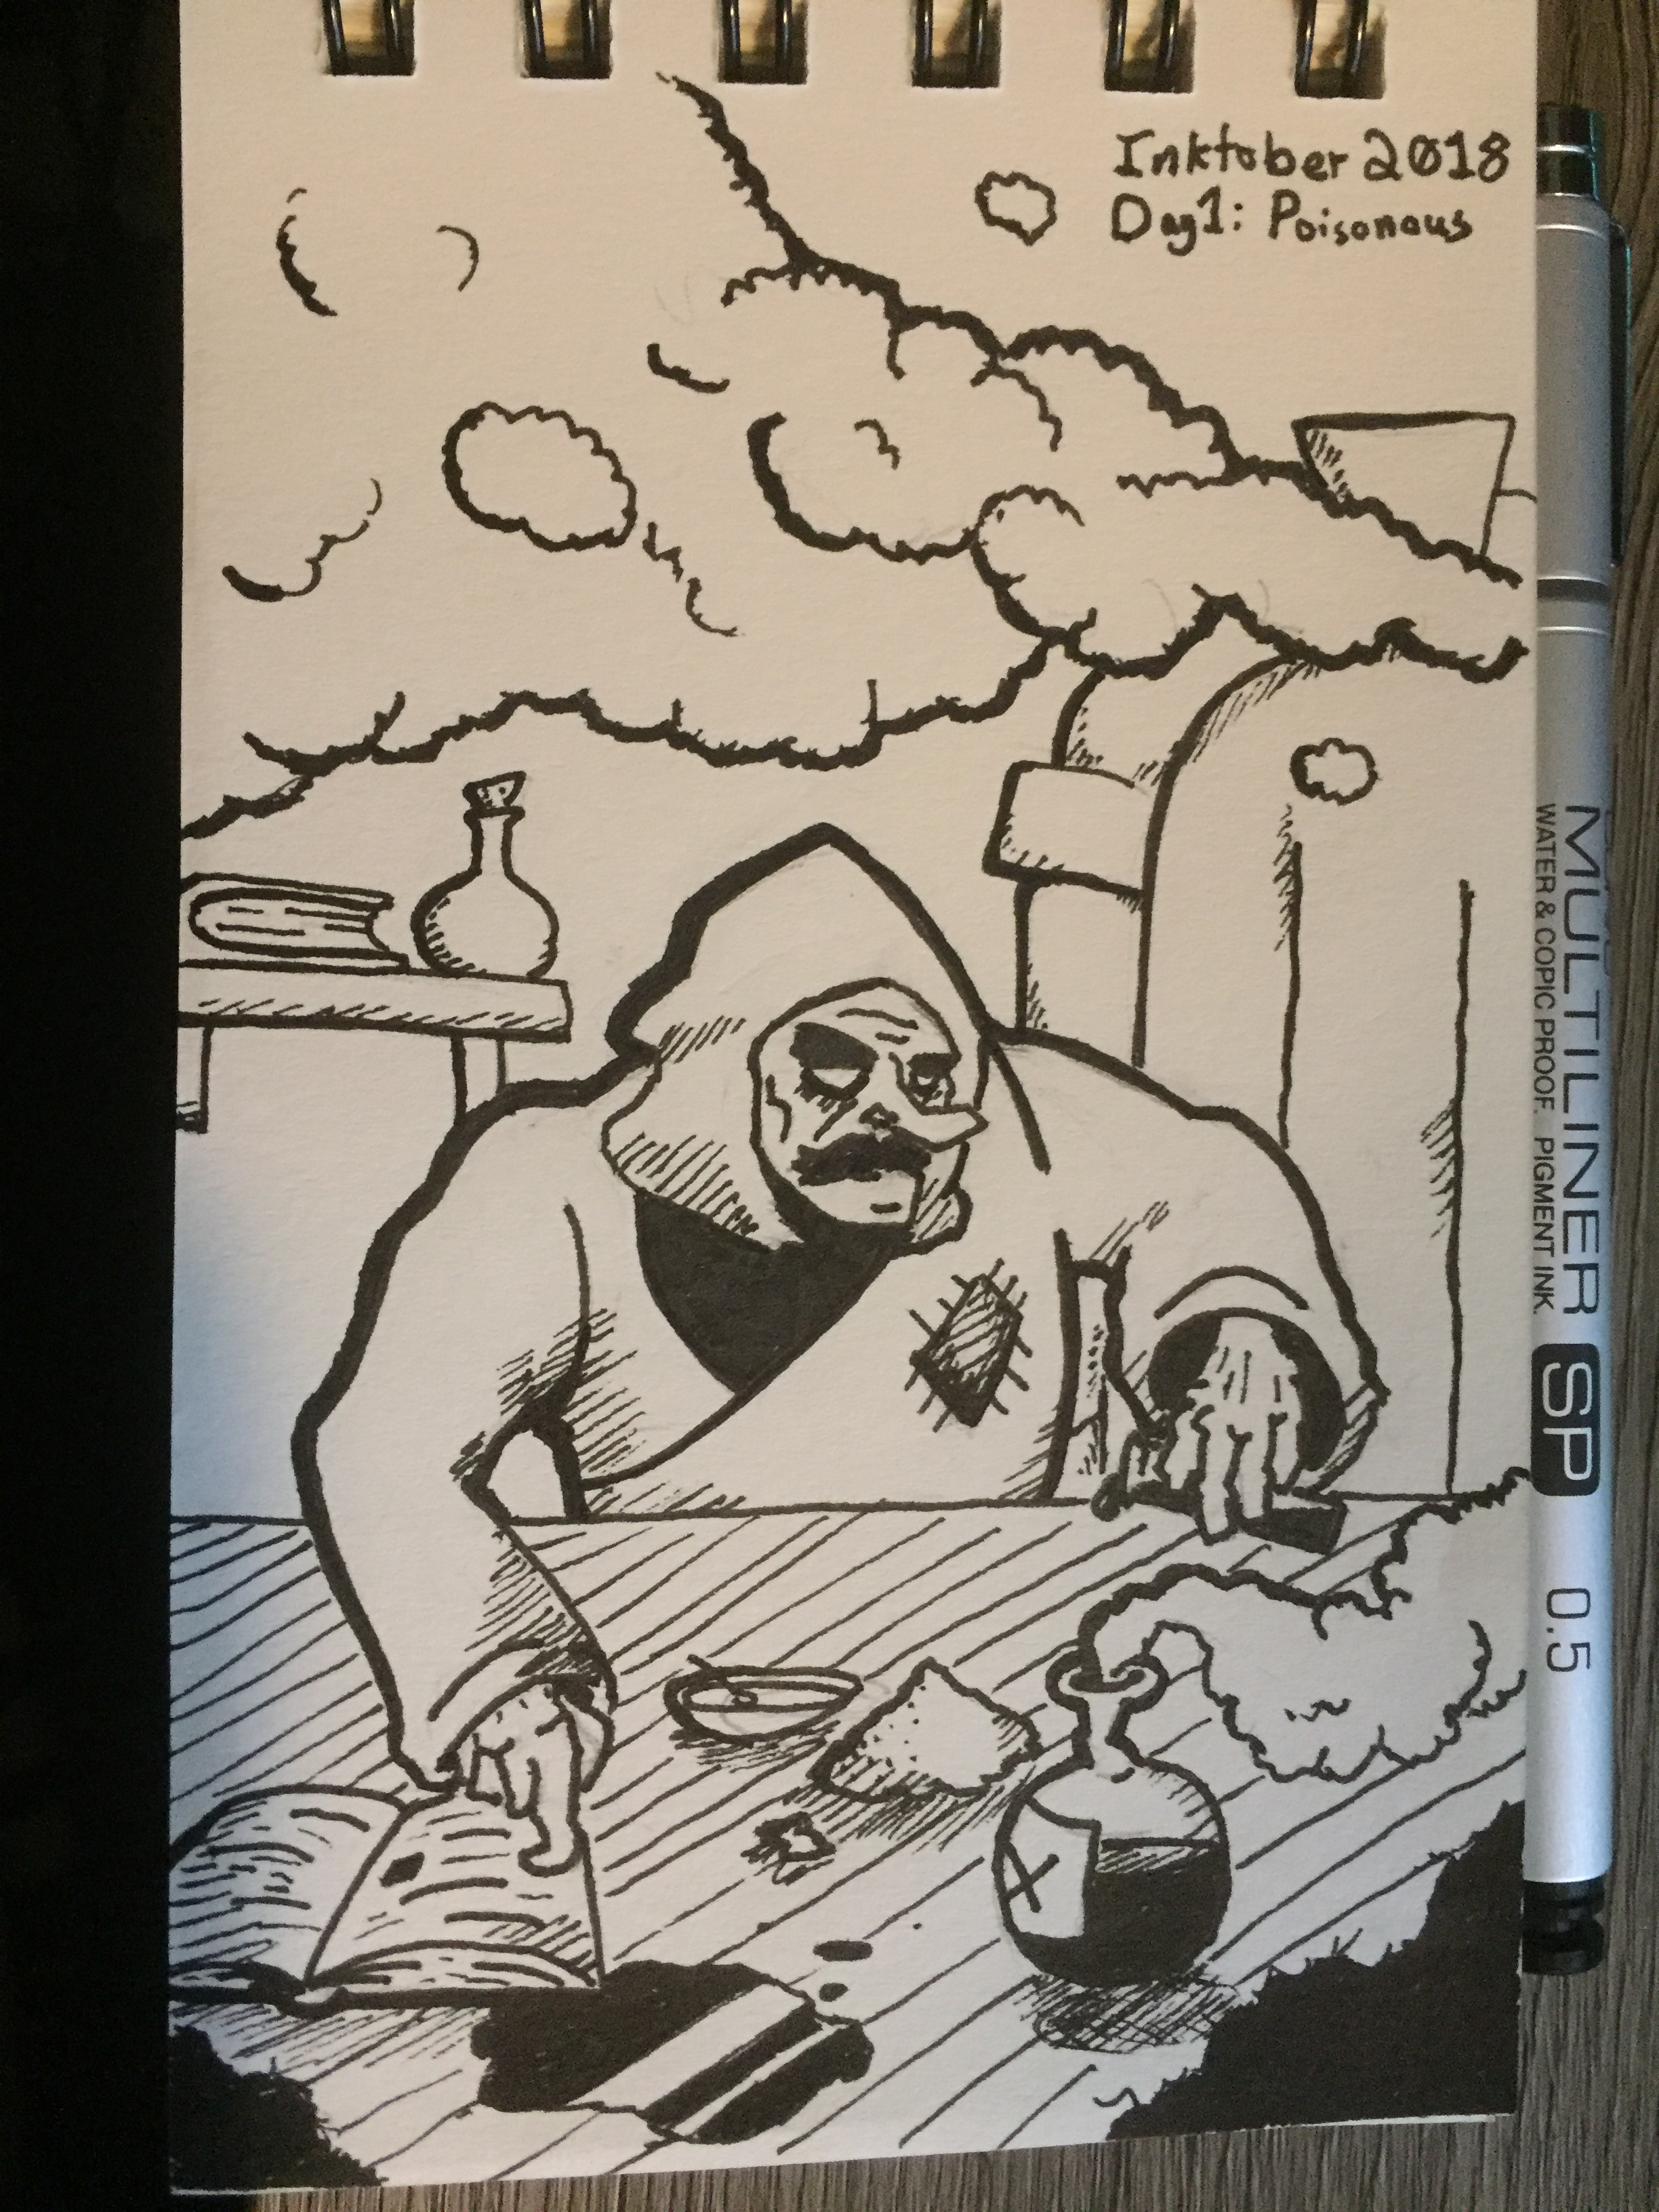 Day 1: Poisonous